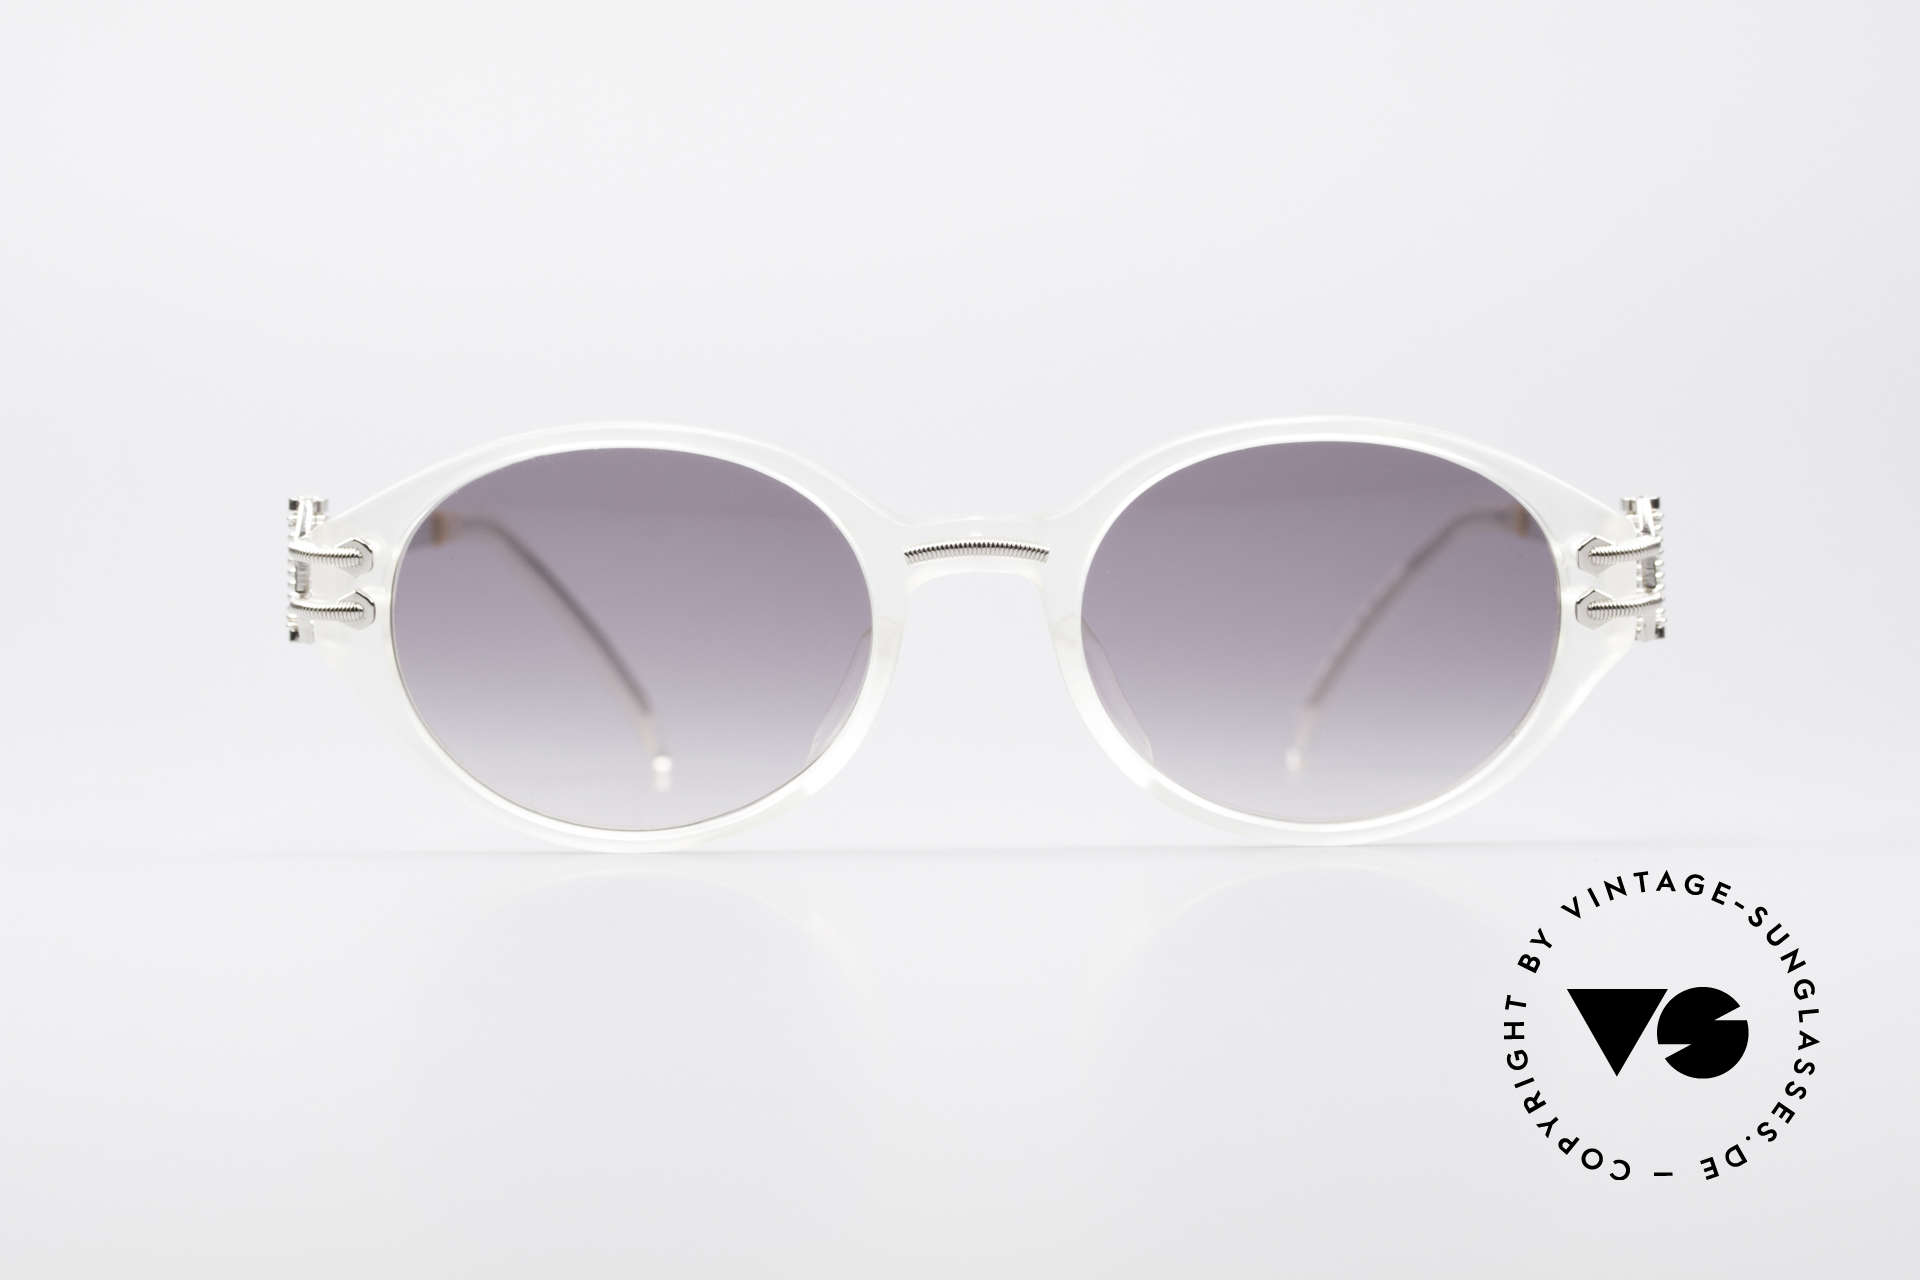 Jean Paul Gaultier 55-5201 90's Steampunk Shades, very interesting (mechanical) frame construction, Made for Men and Women